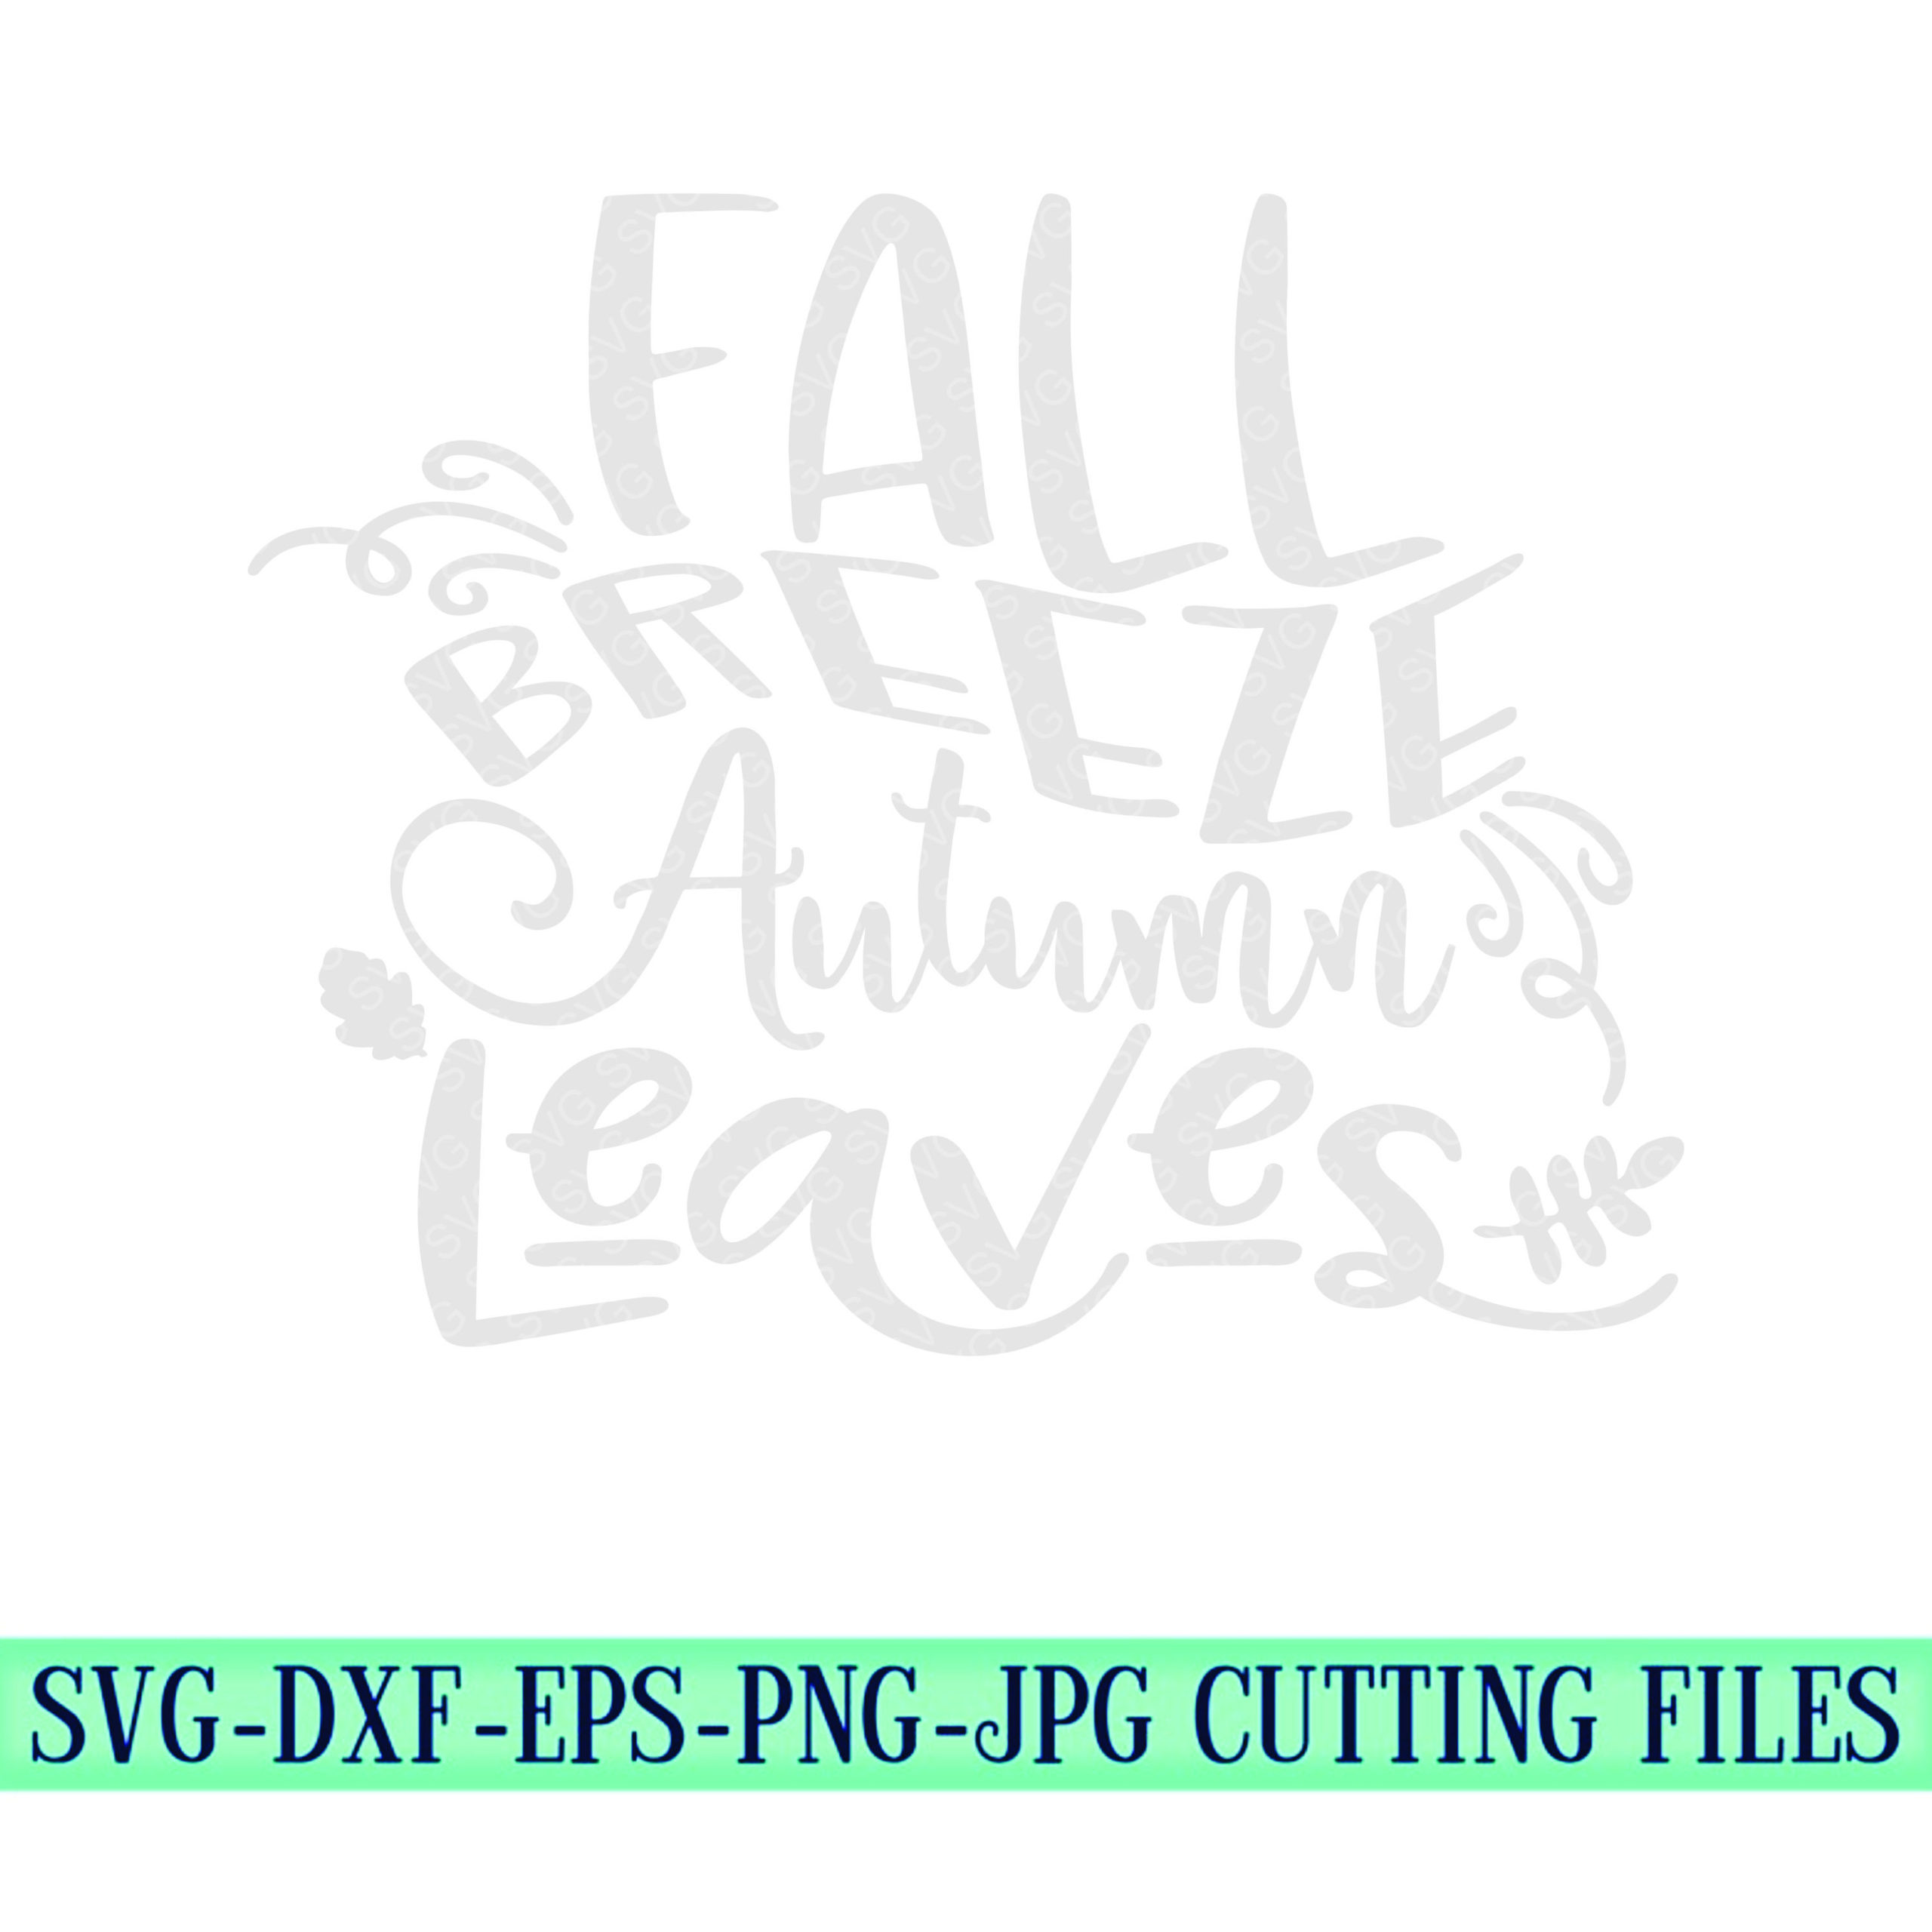 Fall-breeze-autumn-leaves-svg-fall-quote-fall-cricut-designs-fall-svg-designs-fall-cut-files-svg-for-cricut-svg-for-mobile-5f6f6f71